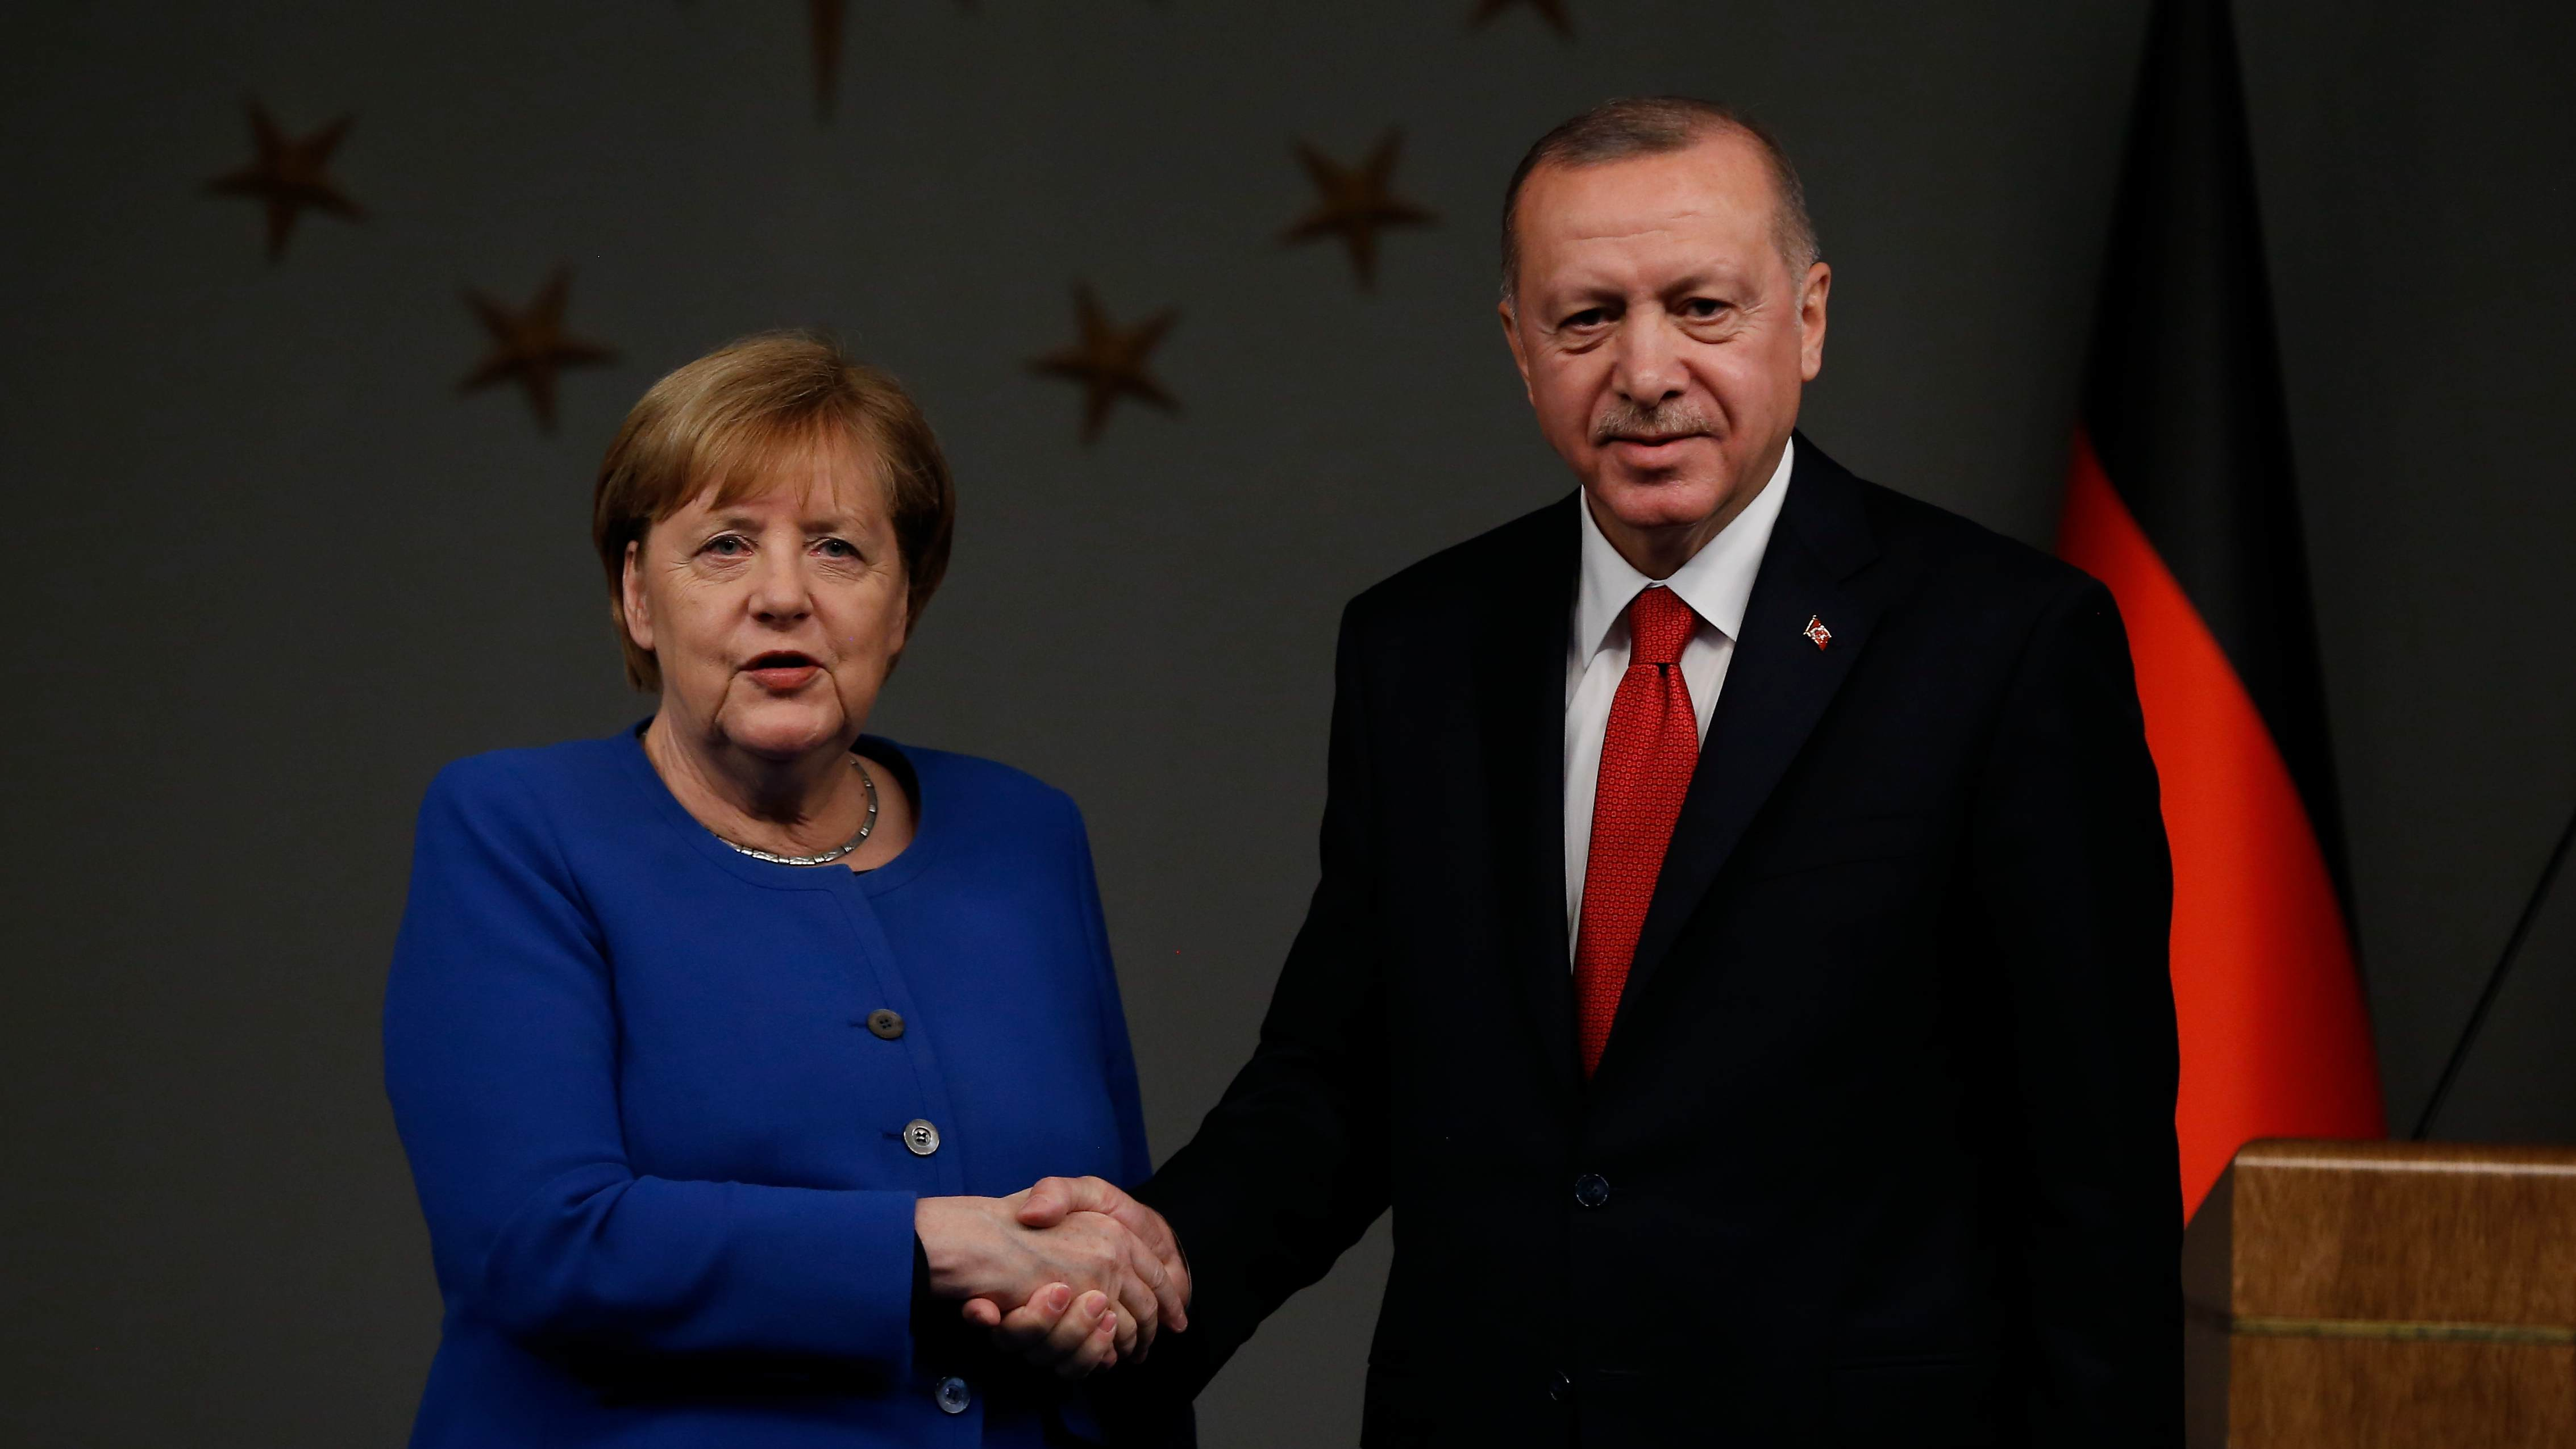 Turkey urges more support from Europe to assist displaced Syrians